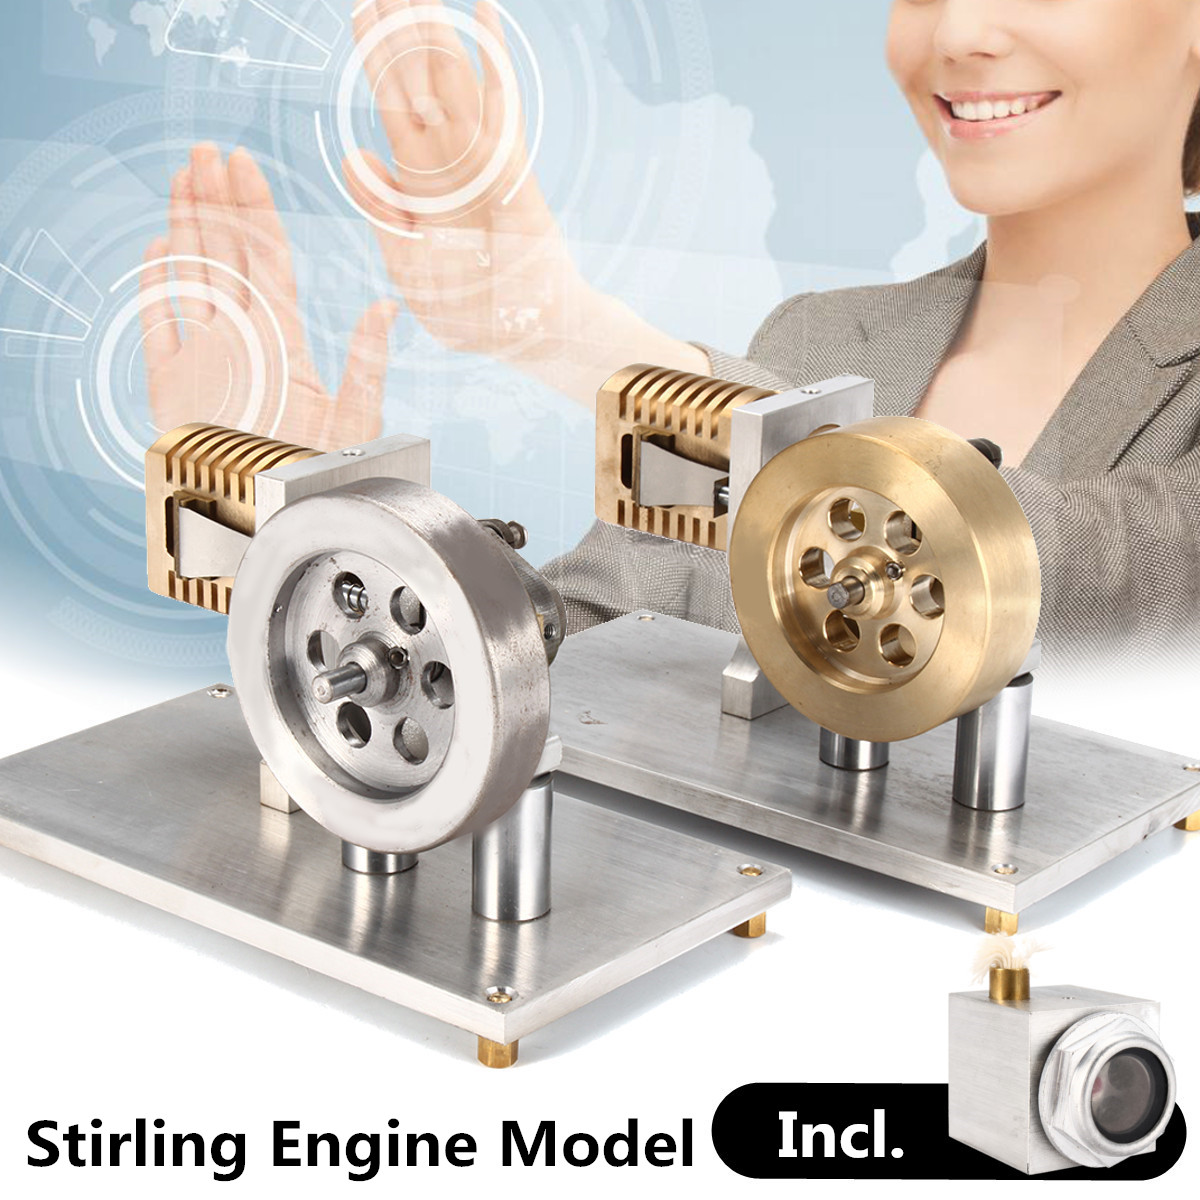 Metal Model Hot Air Stirling Steam Engine Building Kits Flame Lick Vacuum Motor Model Toy School Lab Educational Toys Gifts Metal Model Hot Air Stirling Steam Engine Building Kits Flame Lick Vacuum Motor Model Toy School Lab Educational Toys Gifts